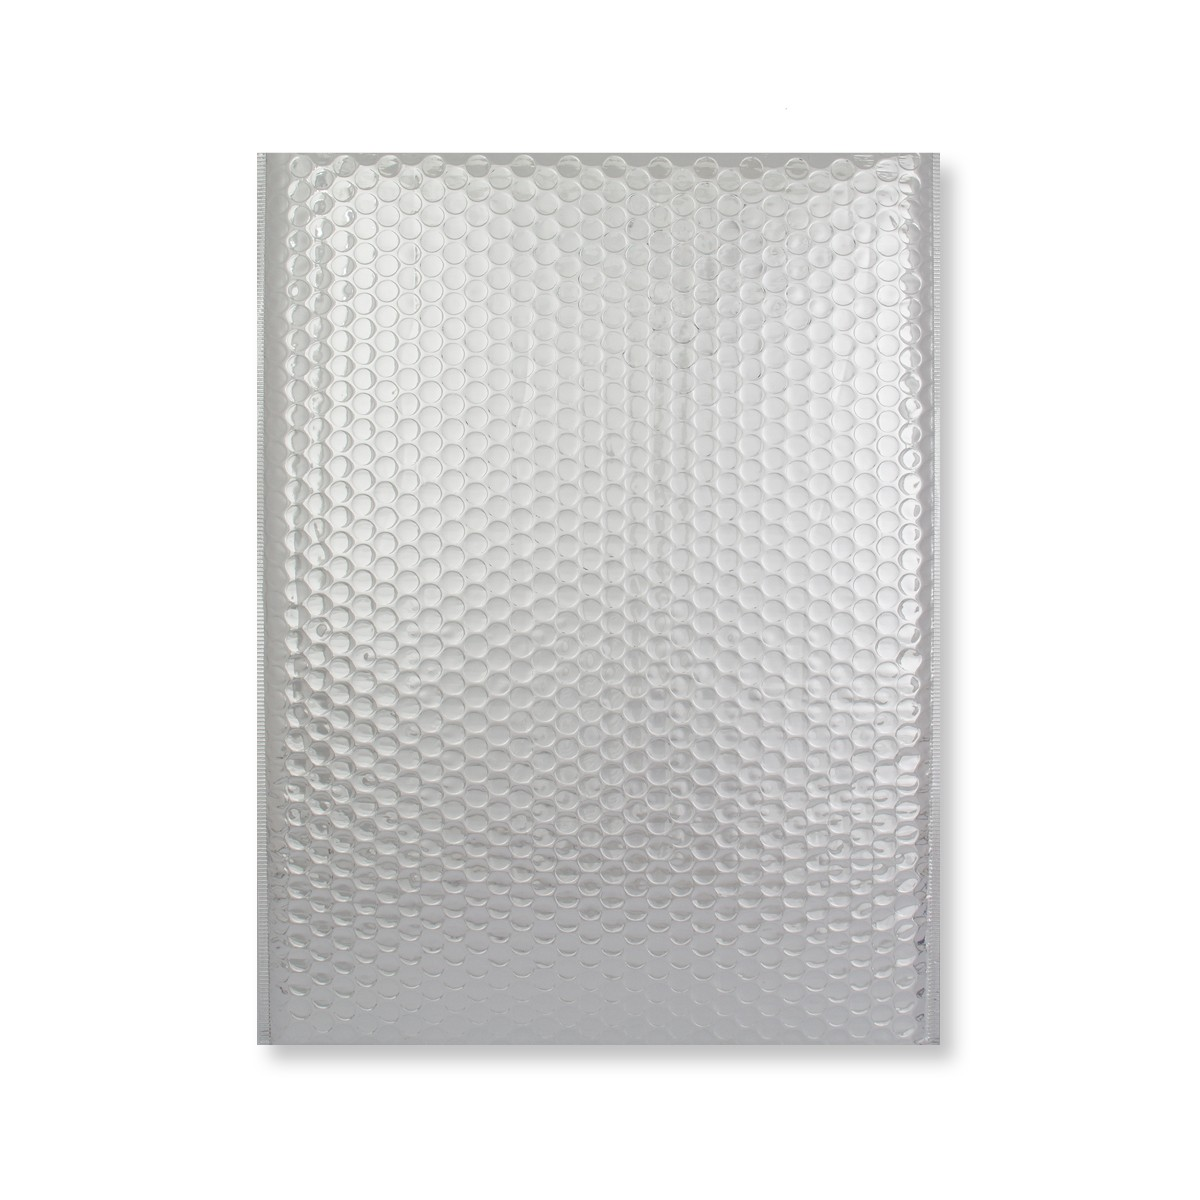 C3 GLOSS METALLIC SILVER PADDED ENVELOPES (450 x 320MM)